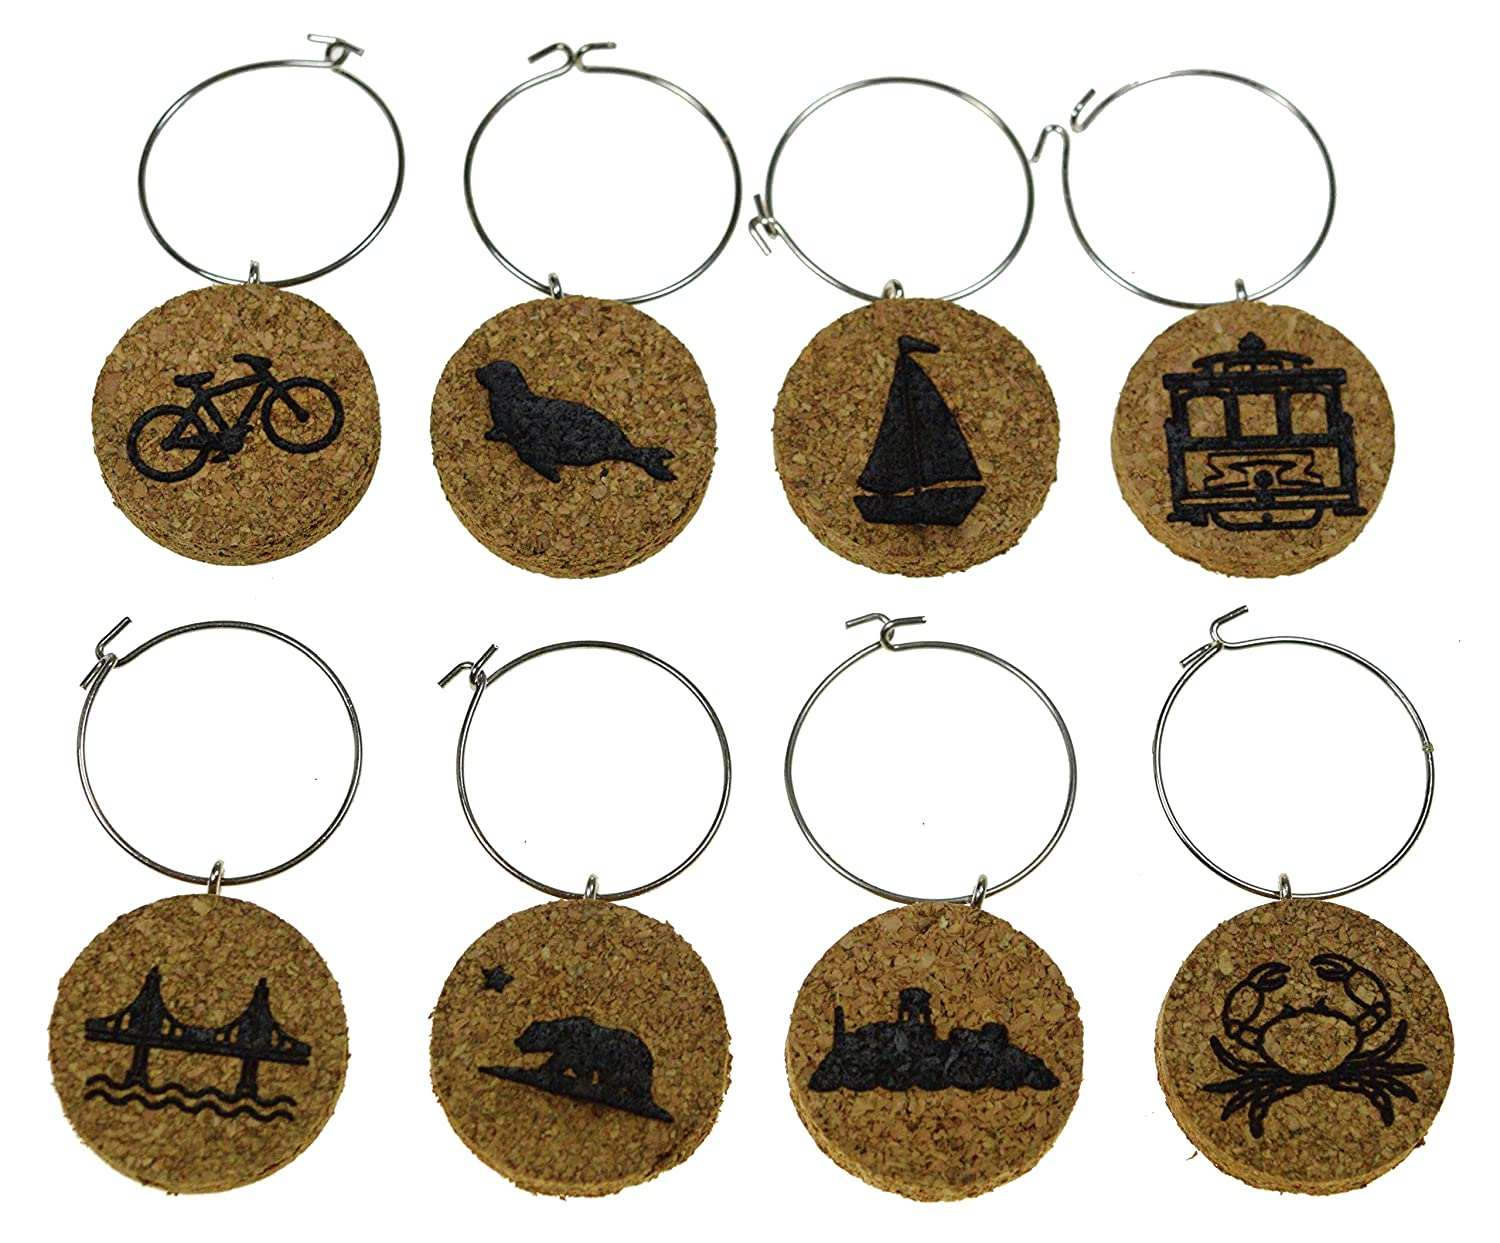 Sailboat Boston Gift Cape Cod Boston Inspired Designs: Lobster Cork Wine Glass Charms Baseball 20+ Unique Sets - Set of 8 Football Anchor Tags to Mark Your Drink Lighthouse Basketball